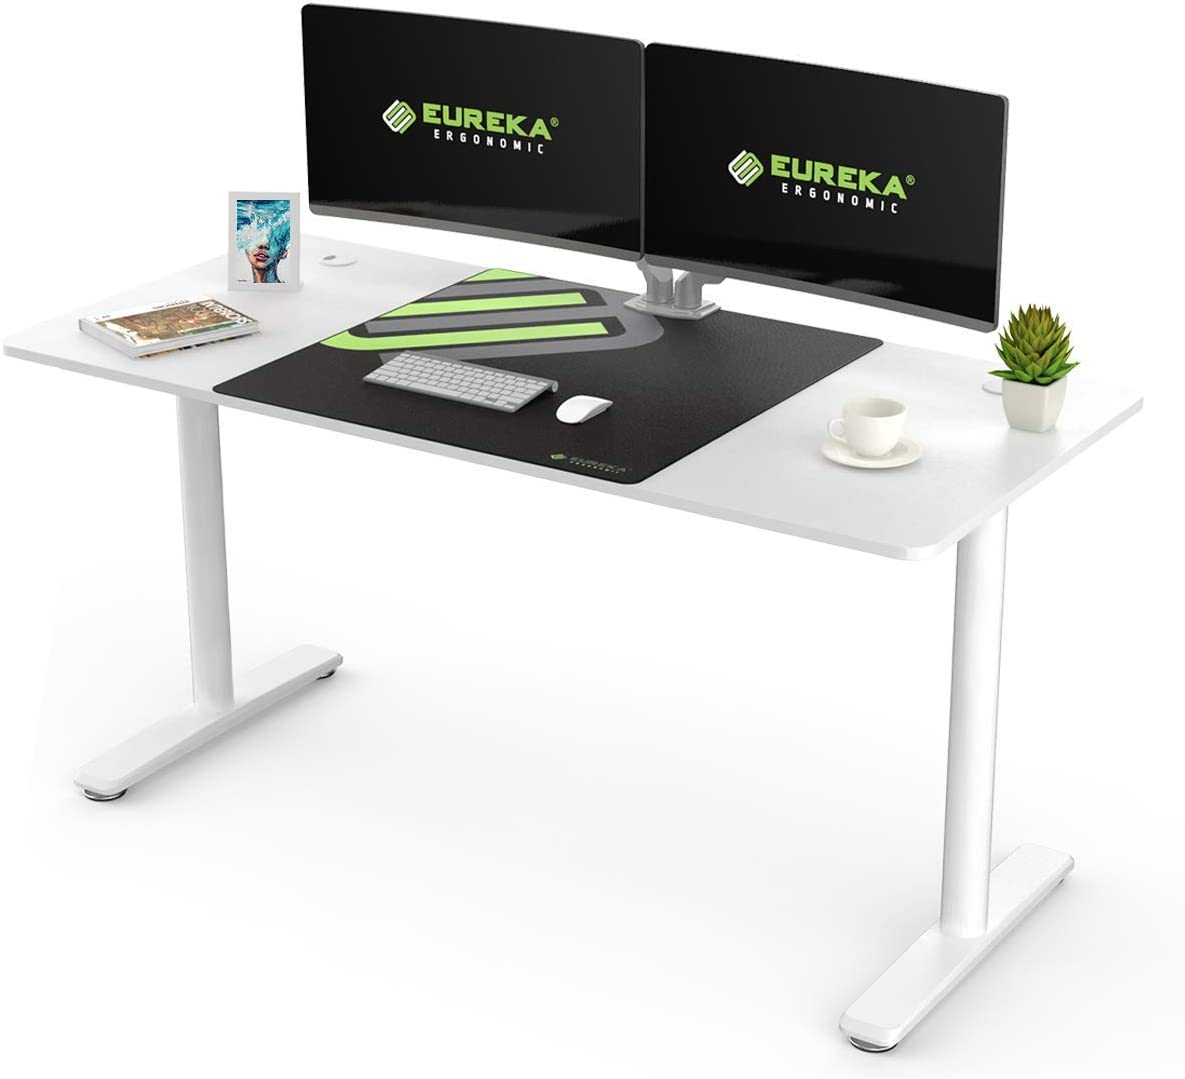 EUREKA ERGONOMIC I-Shape Computer Desk 60 Inch Multi-Functional Home Office Study Writing PC Gaming Desk Laptop Table Computer Workstation with Free Large Mousepad, White